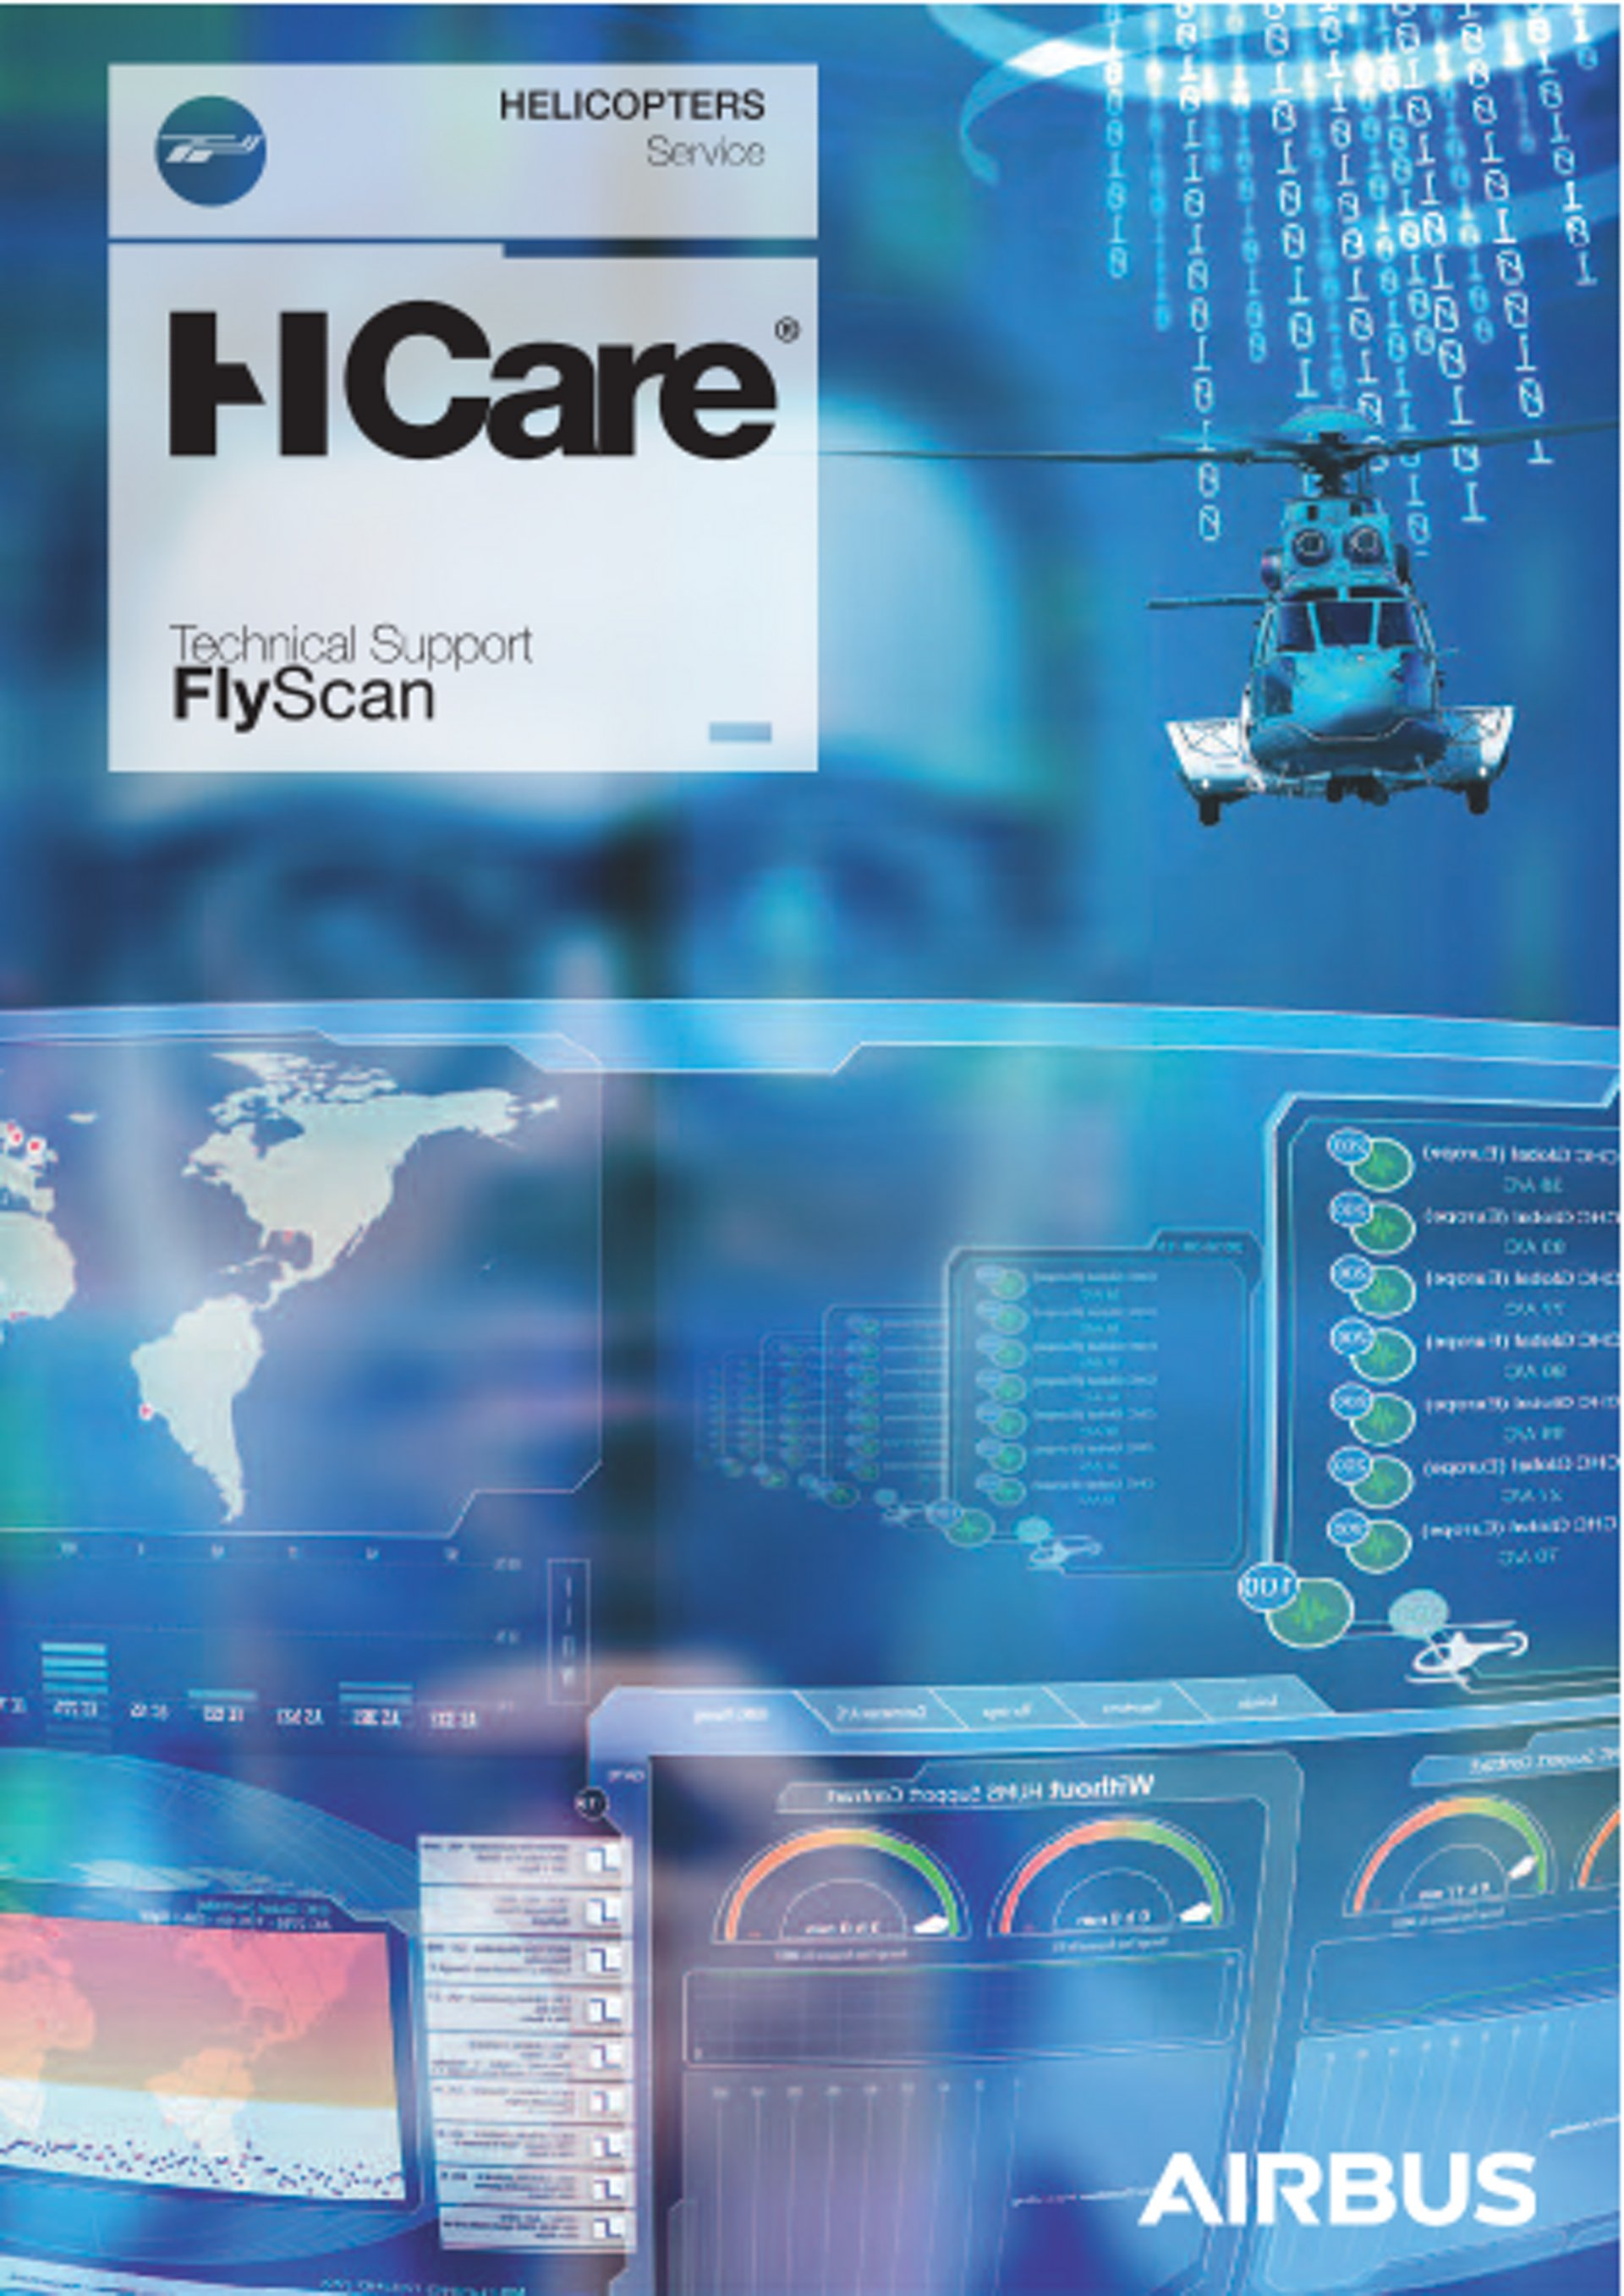 HCare Technical Support FlyScan